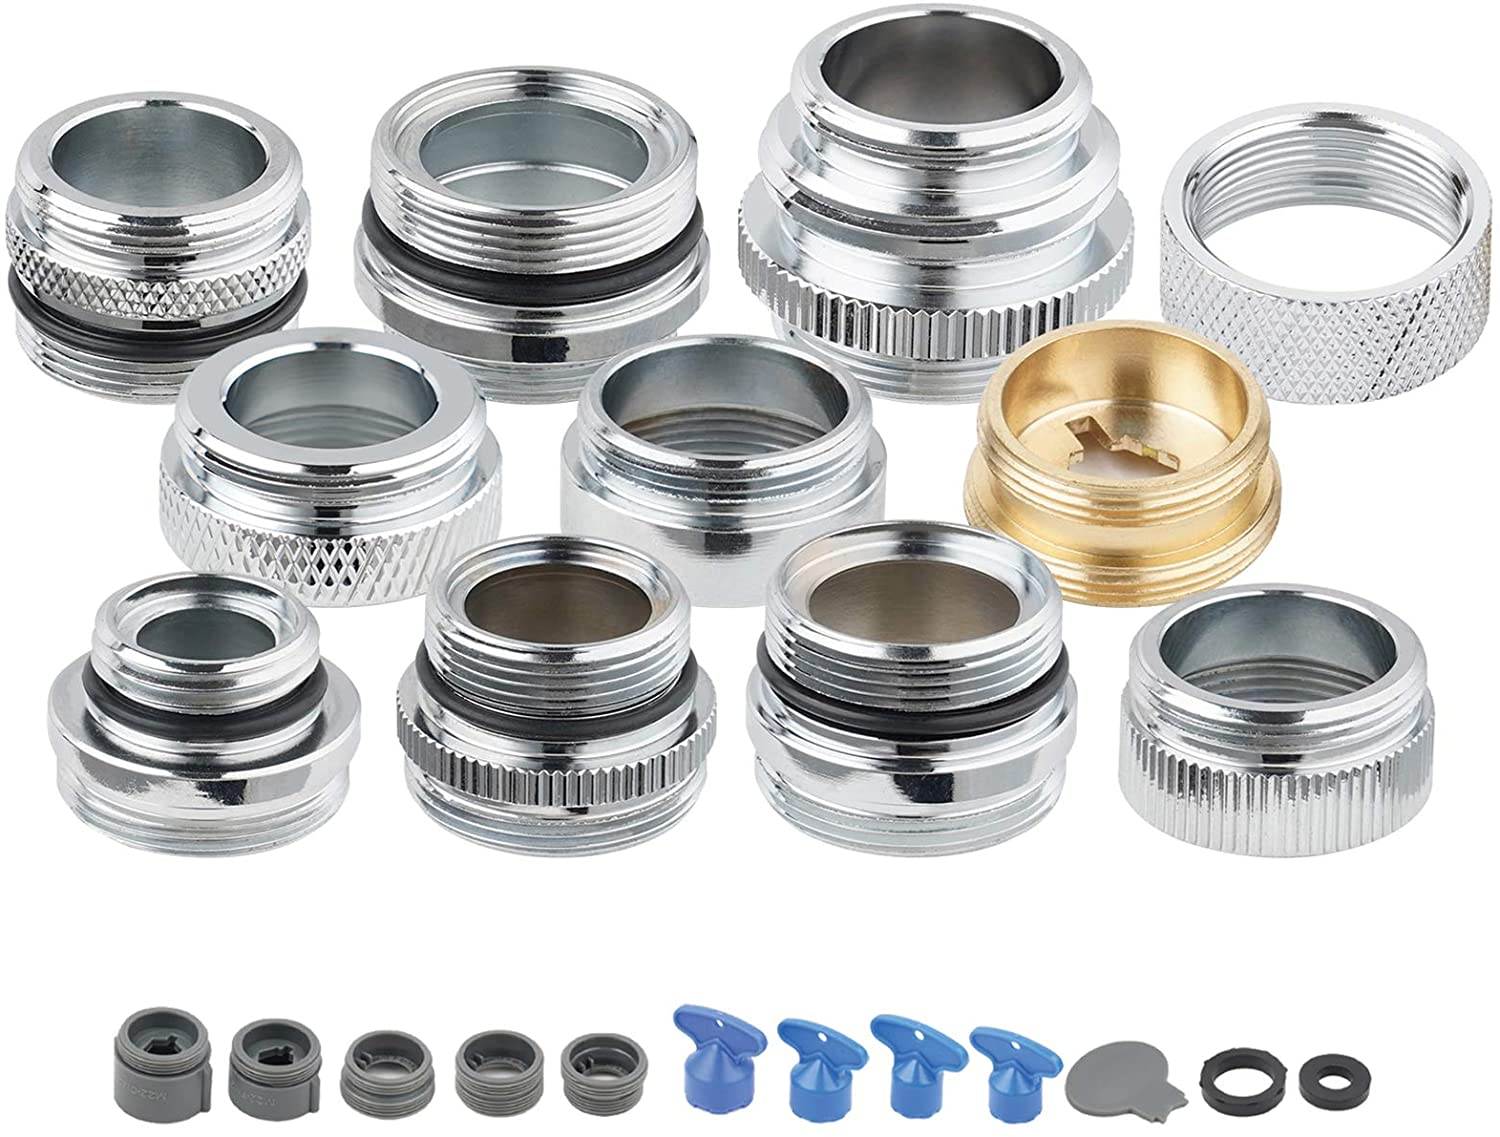 11 Pieces Faucet Adapter Kit, Hibbent Brass Adapters Set for Faucet Tap with Removable Aerator to Connect Garden Hose, Aerator, Water Filter Adapter for faucet sink- Male/Female-Chrome Finished